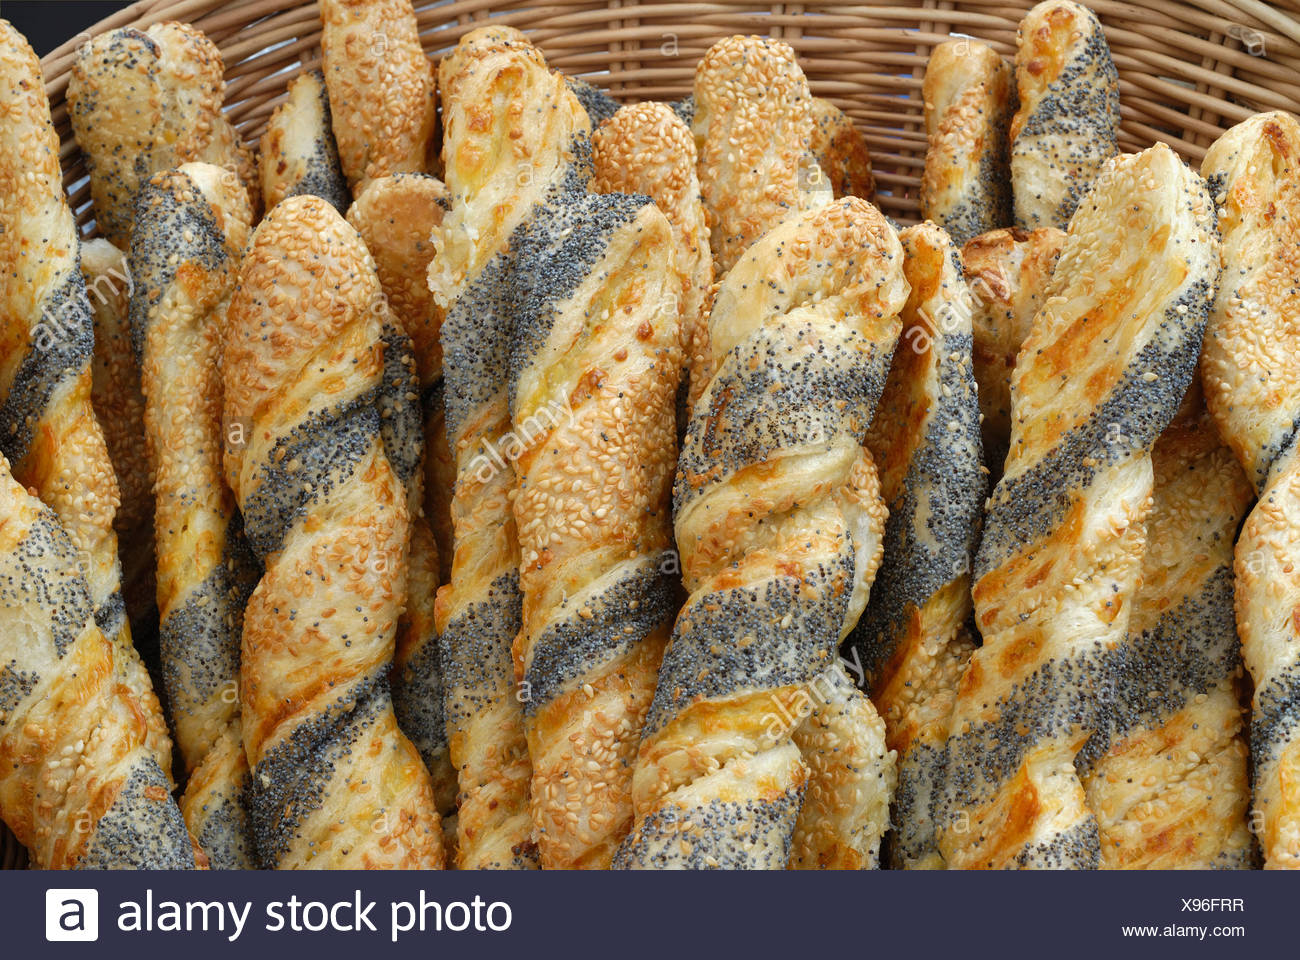 Poppyseed sticks (mini baguettes) in a basket Stock Photo